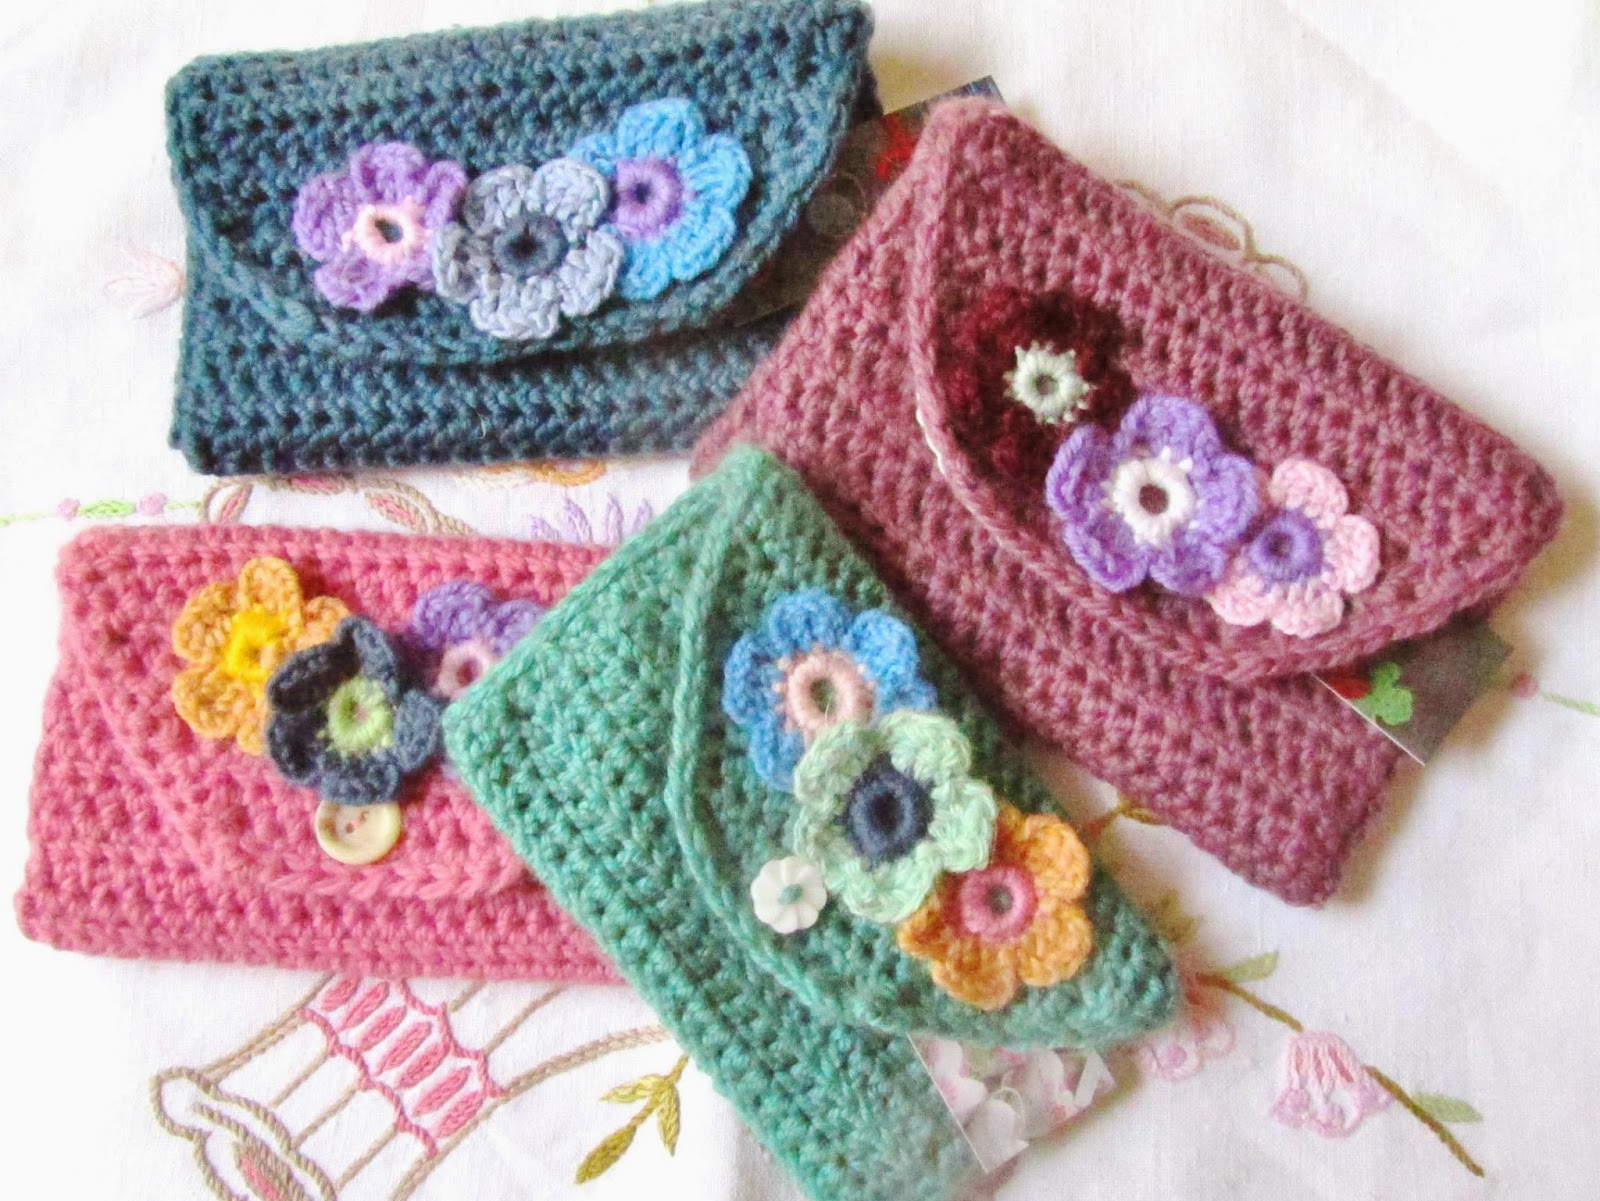 Free Patterns – Quick Crochet Projects – Crochet |Easy Crochet Craft Projects